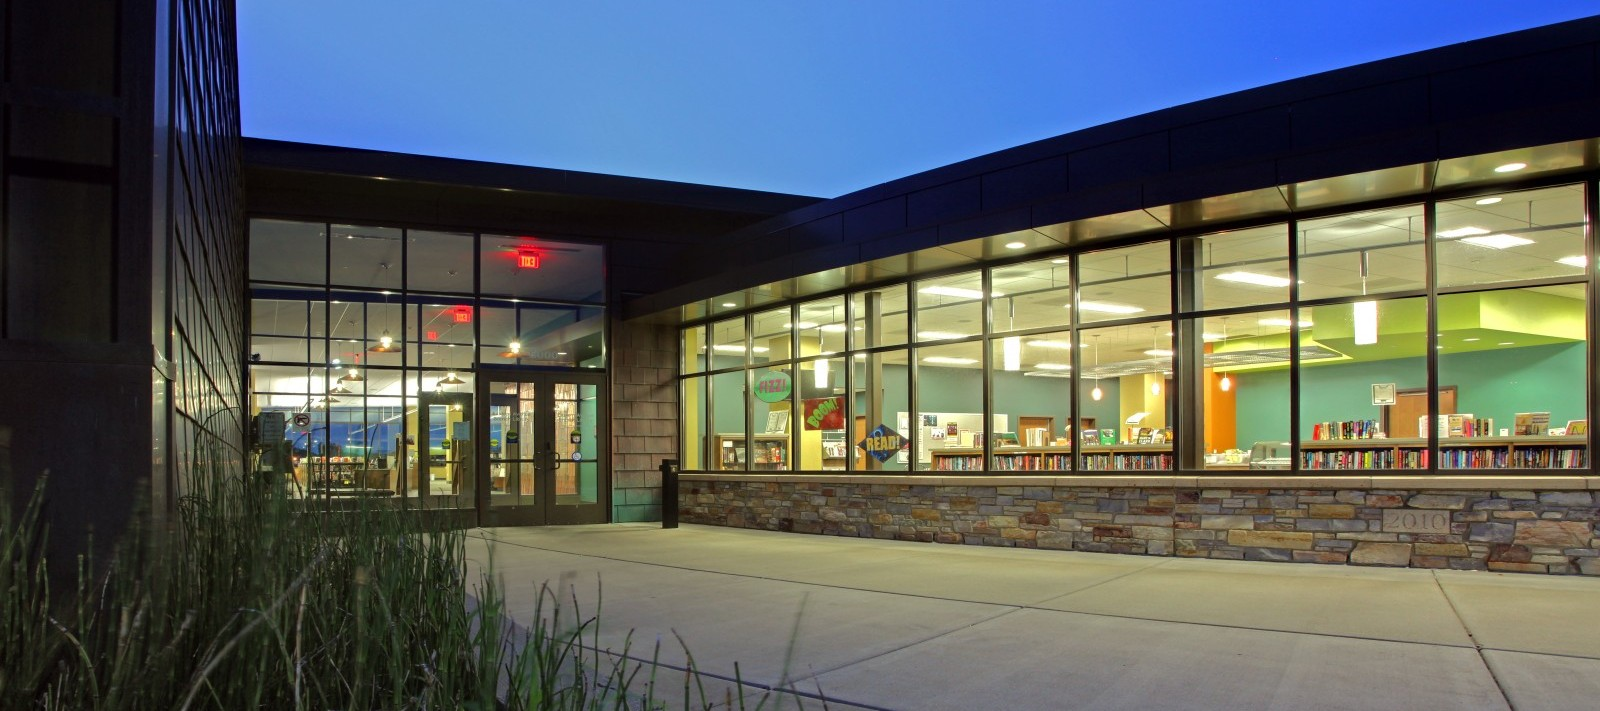 Davenport Public Library Eastern Branch entryway at night